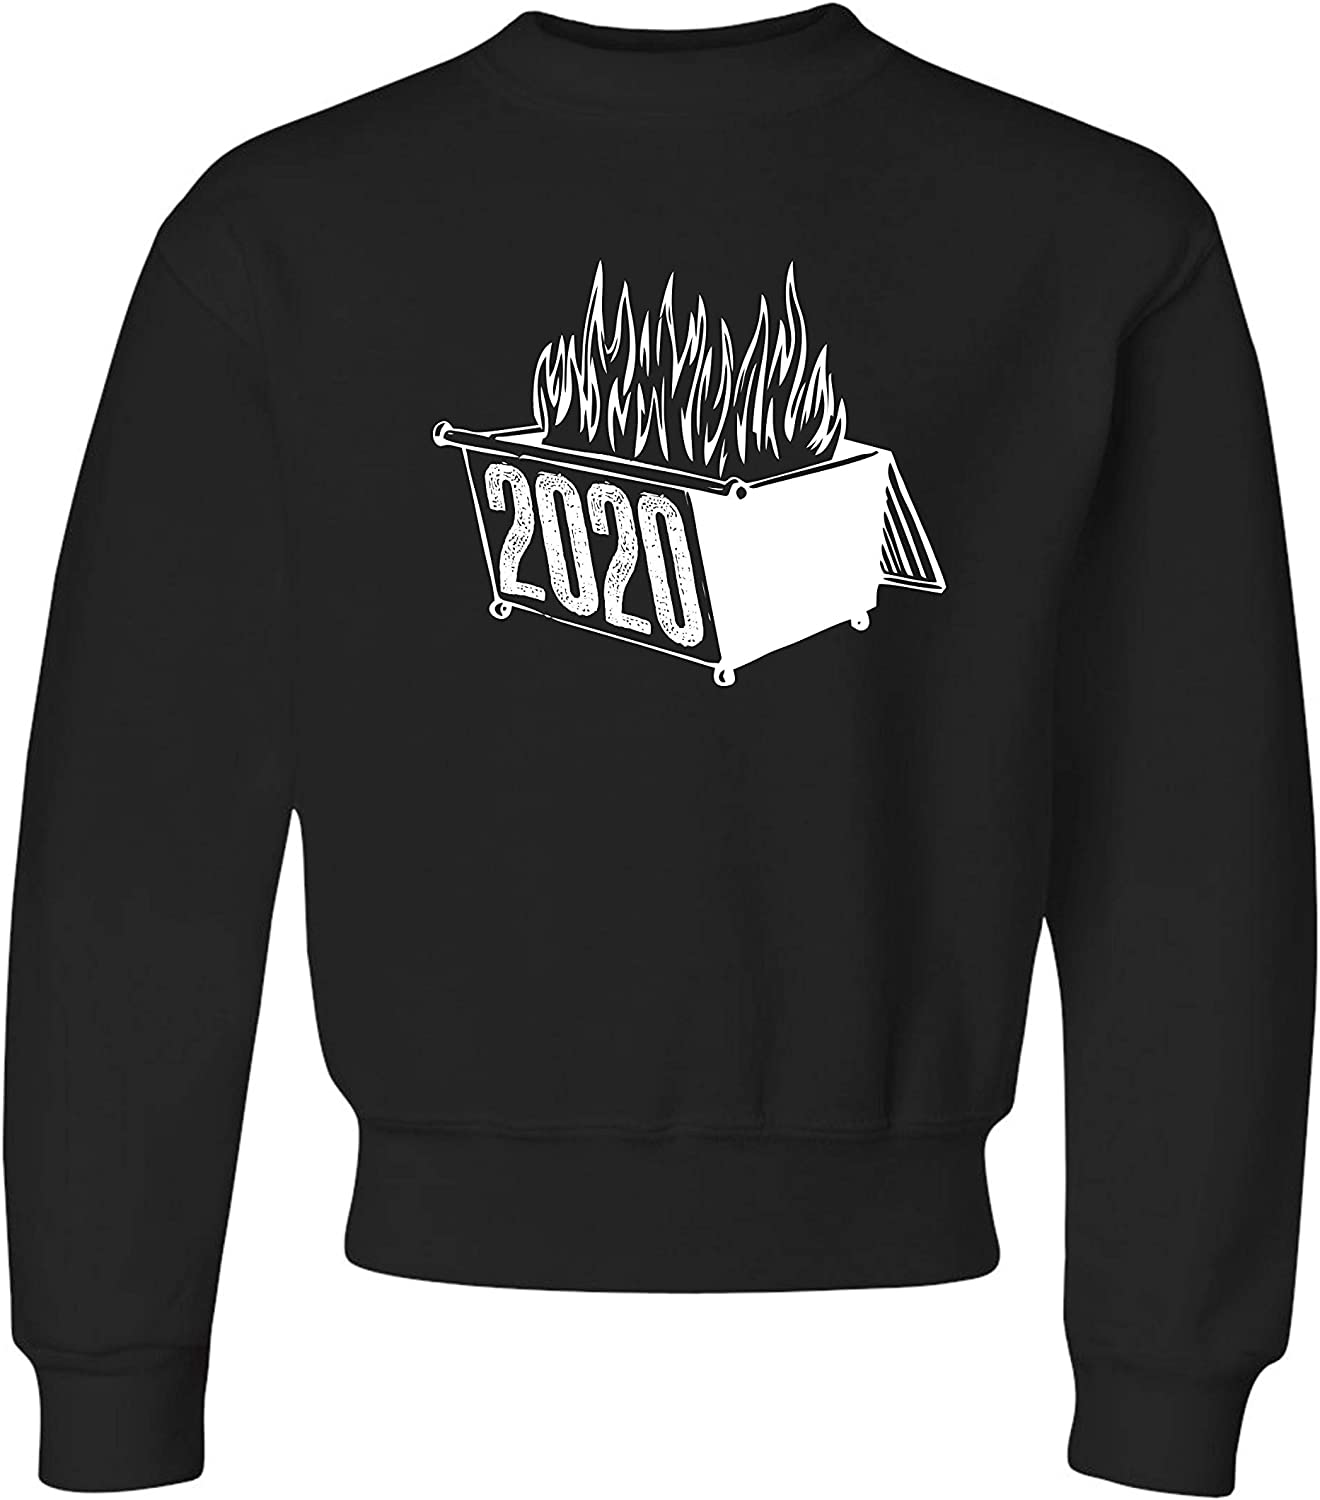 Go All Out Youth 2020 Dumpster Fire Funny 2020 Worst Year Ever C